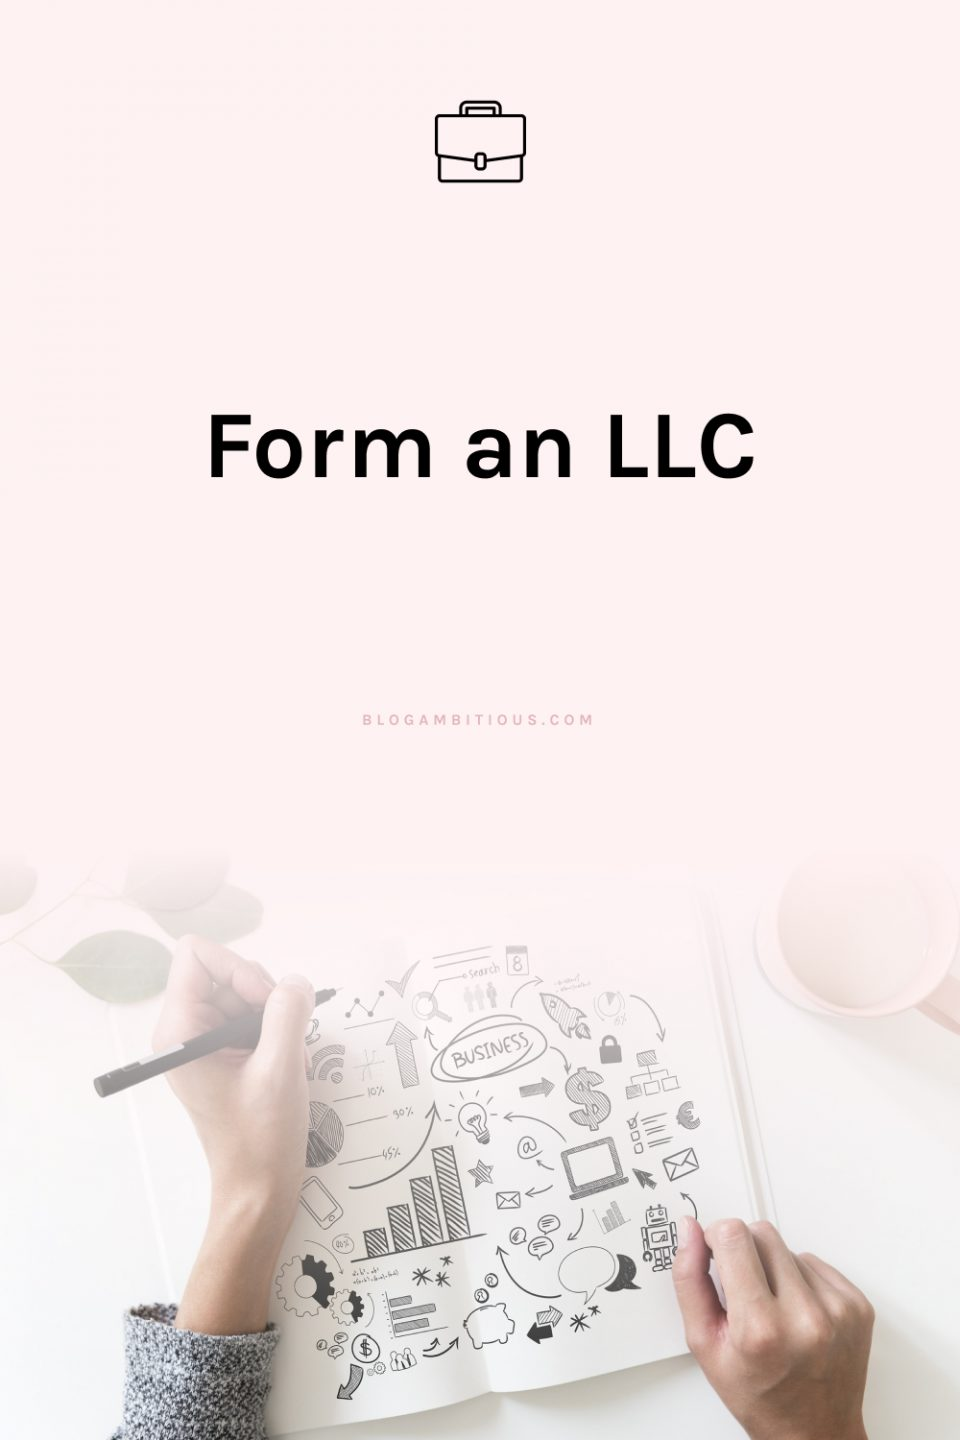 How to Form an LLC All By Yo' Self